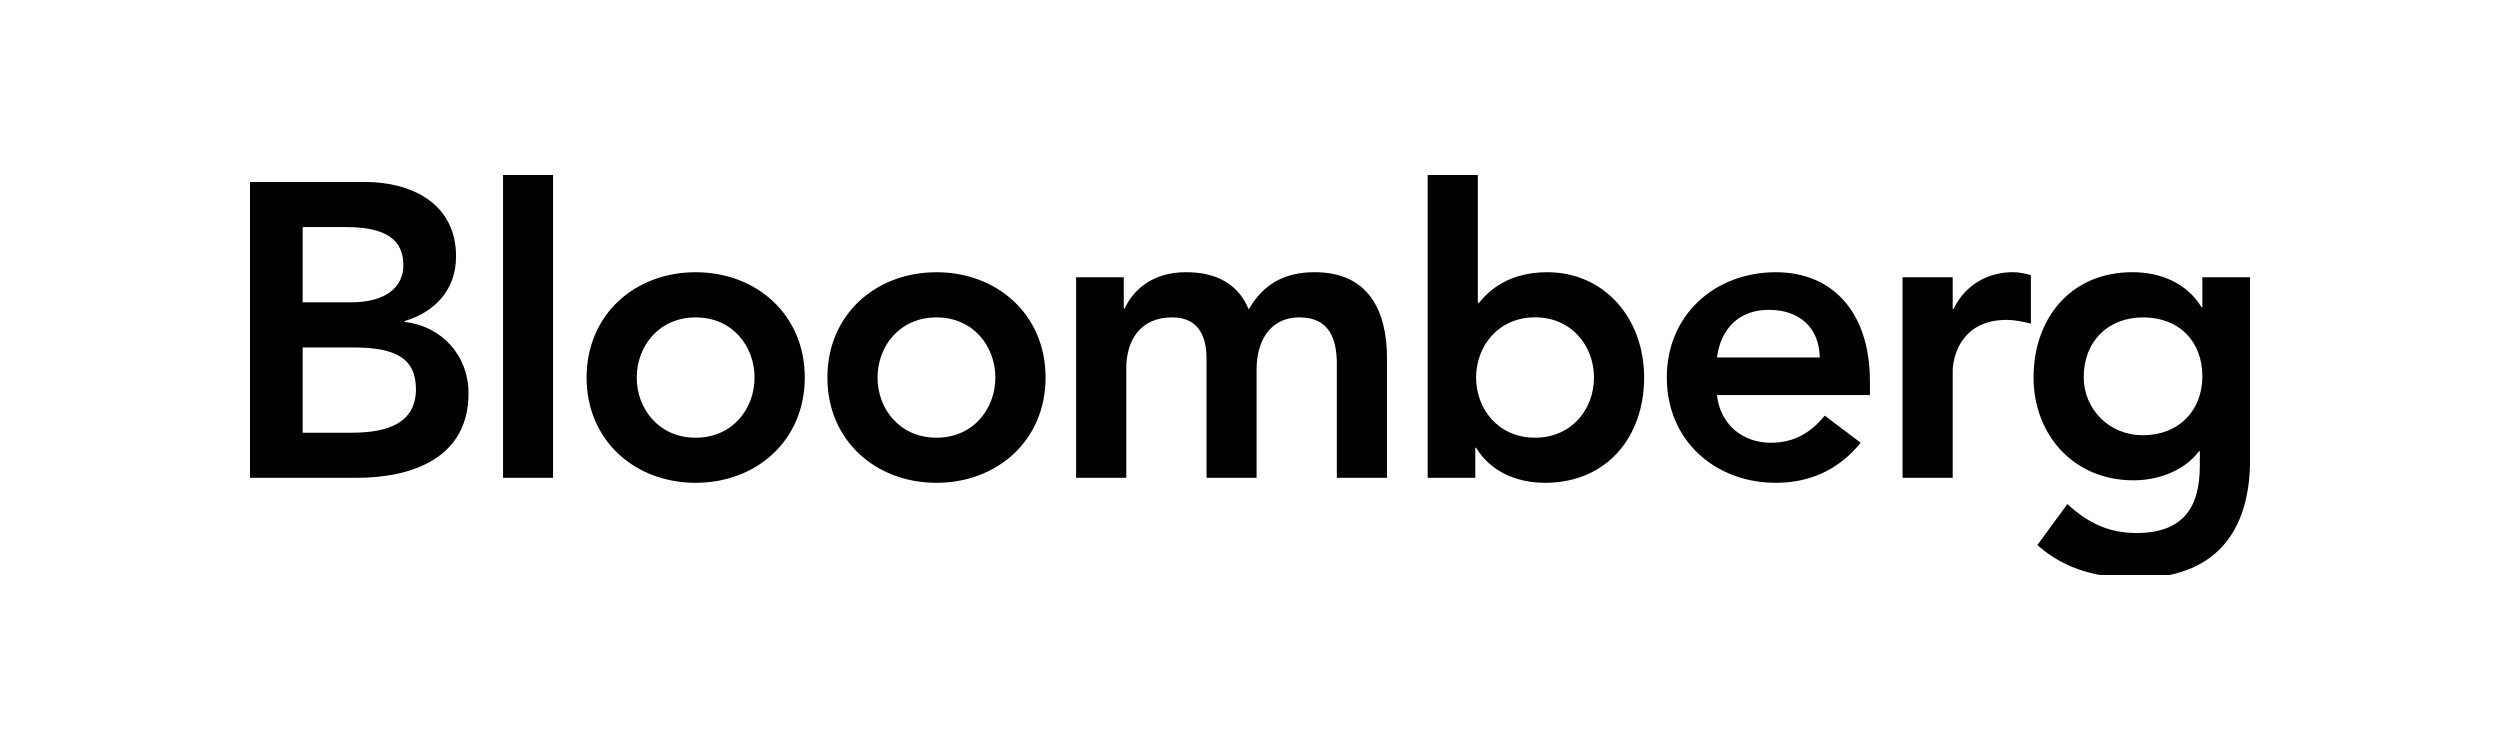 Bloomberg Logo And Symbol, Meaning, History, Png - Bloomberg Logo PNG